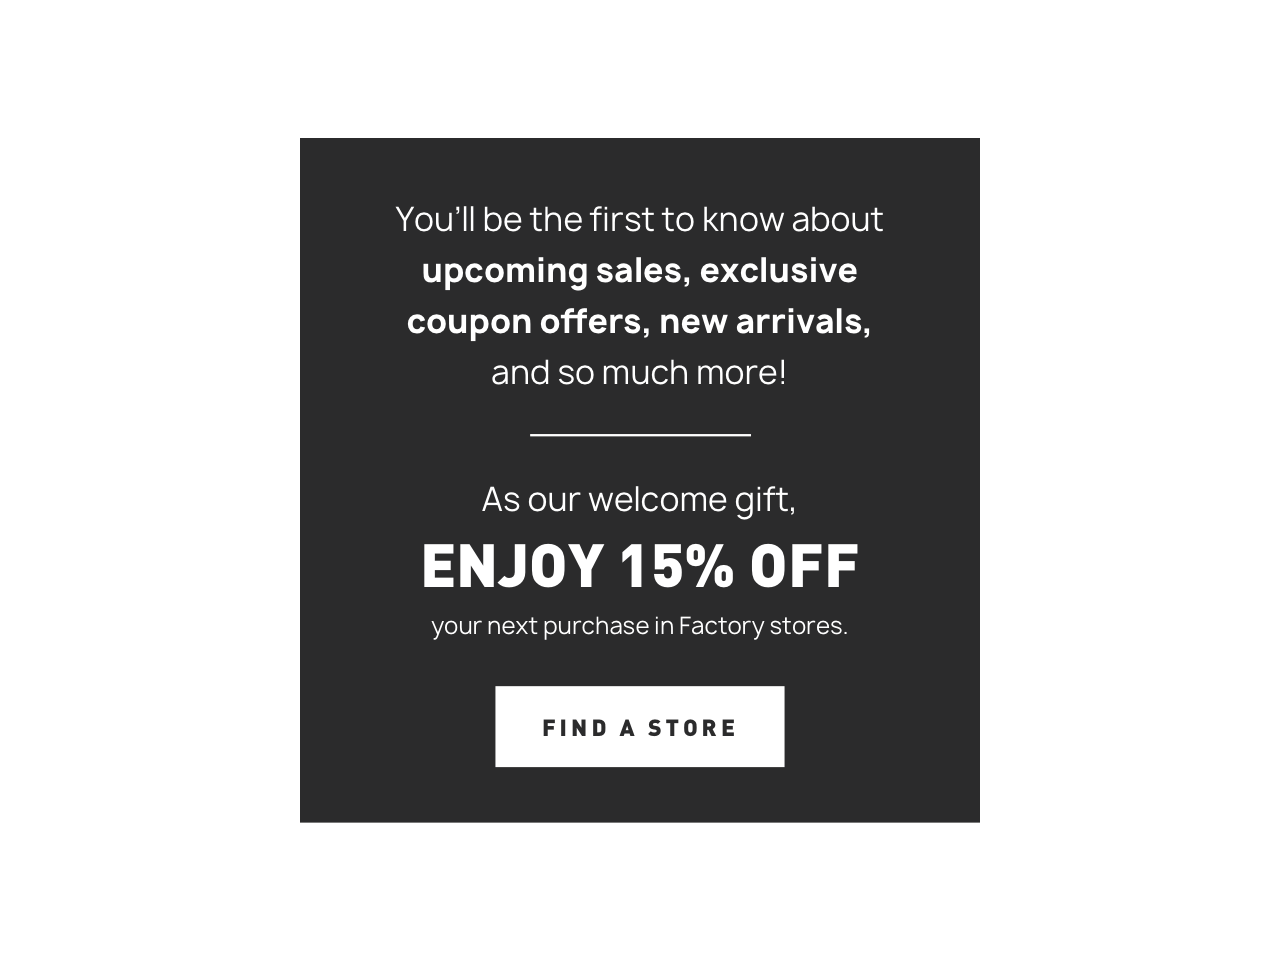 Welcome email from Banana Republic featuring exclusive offers